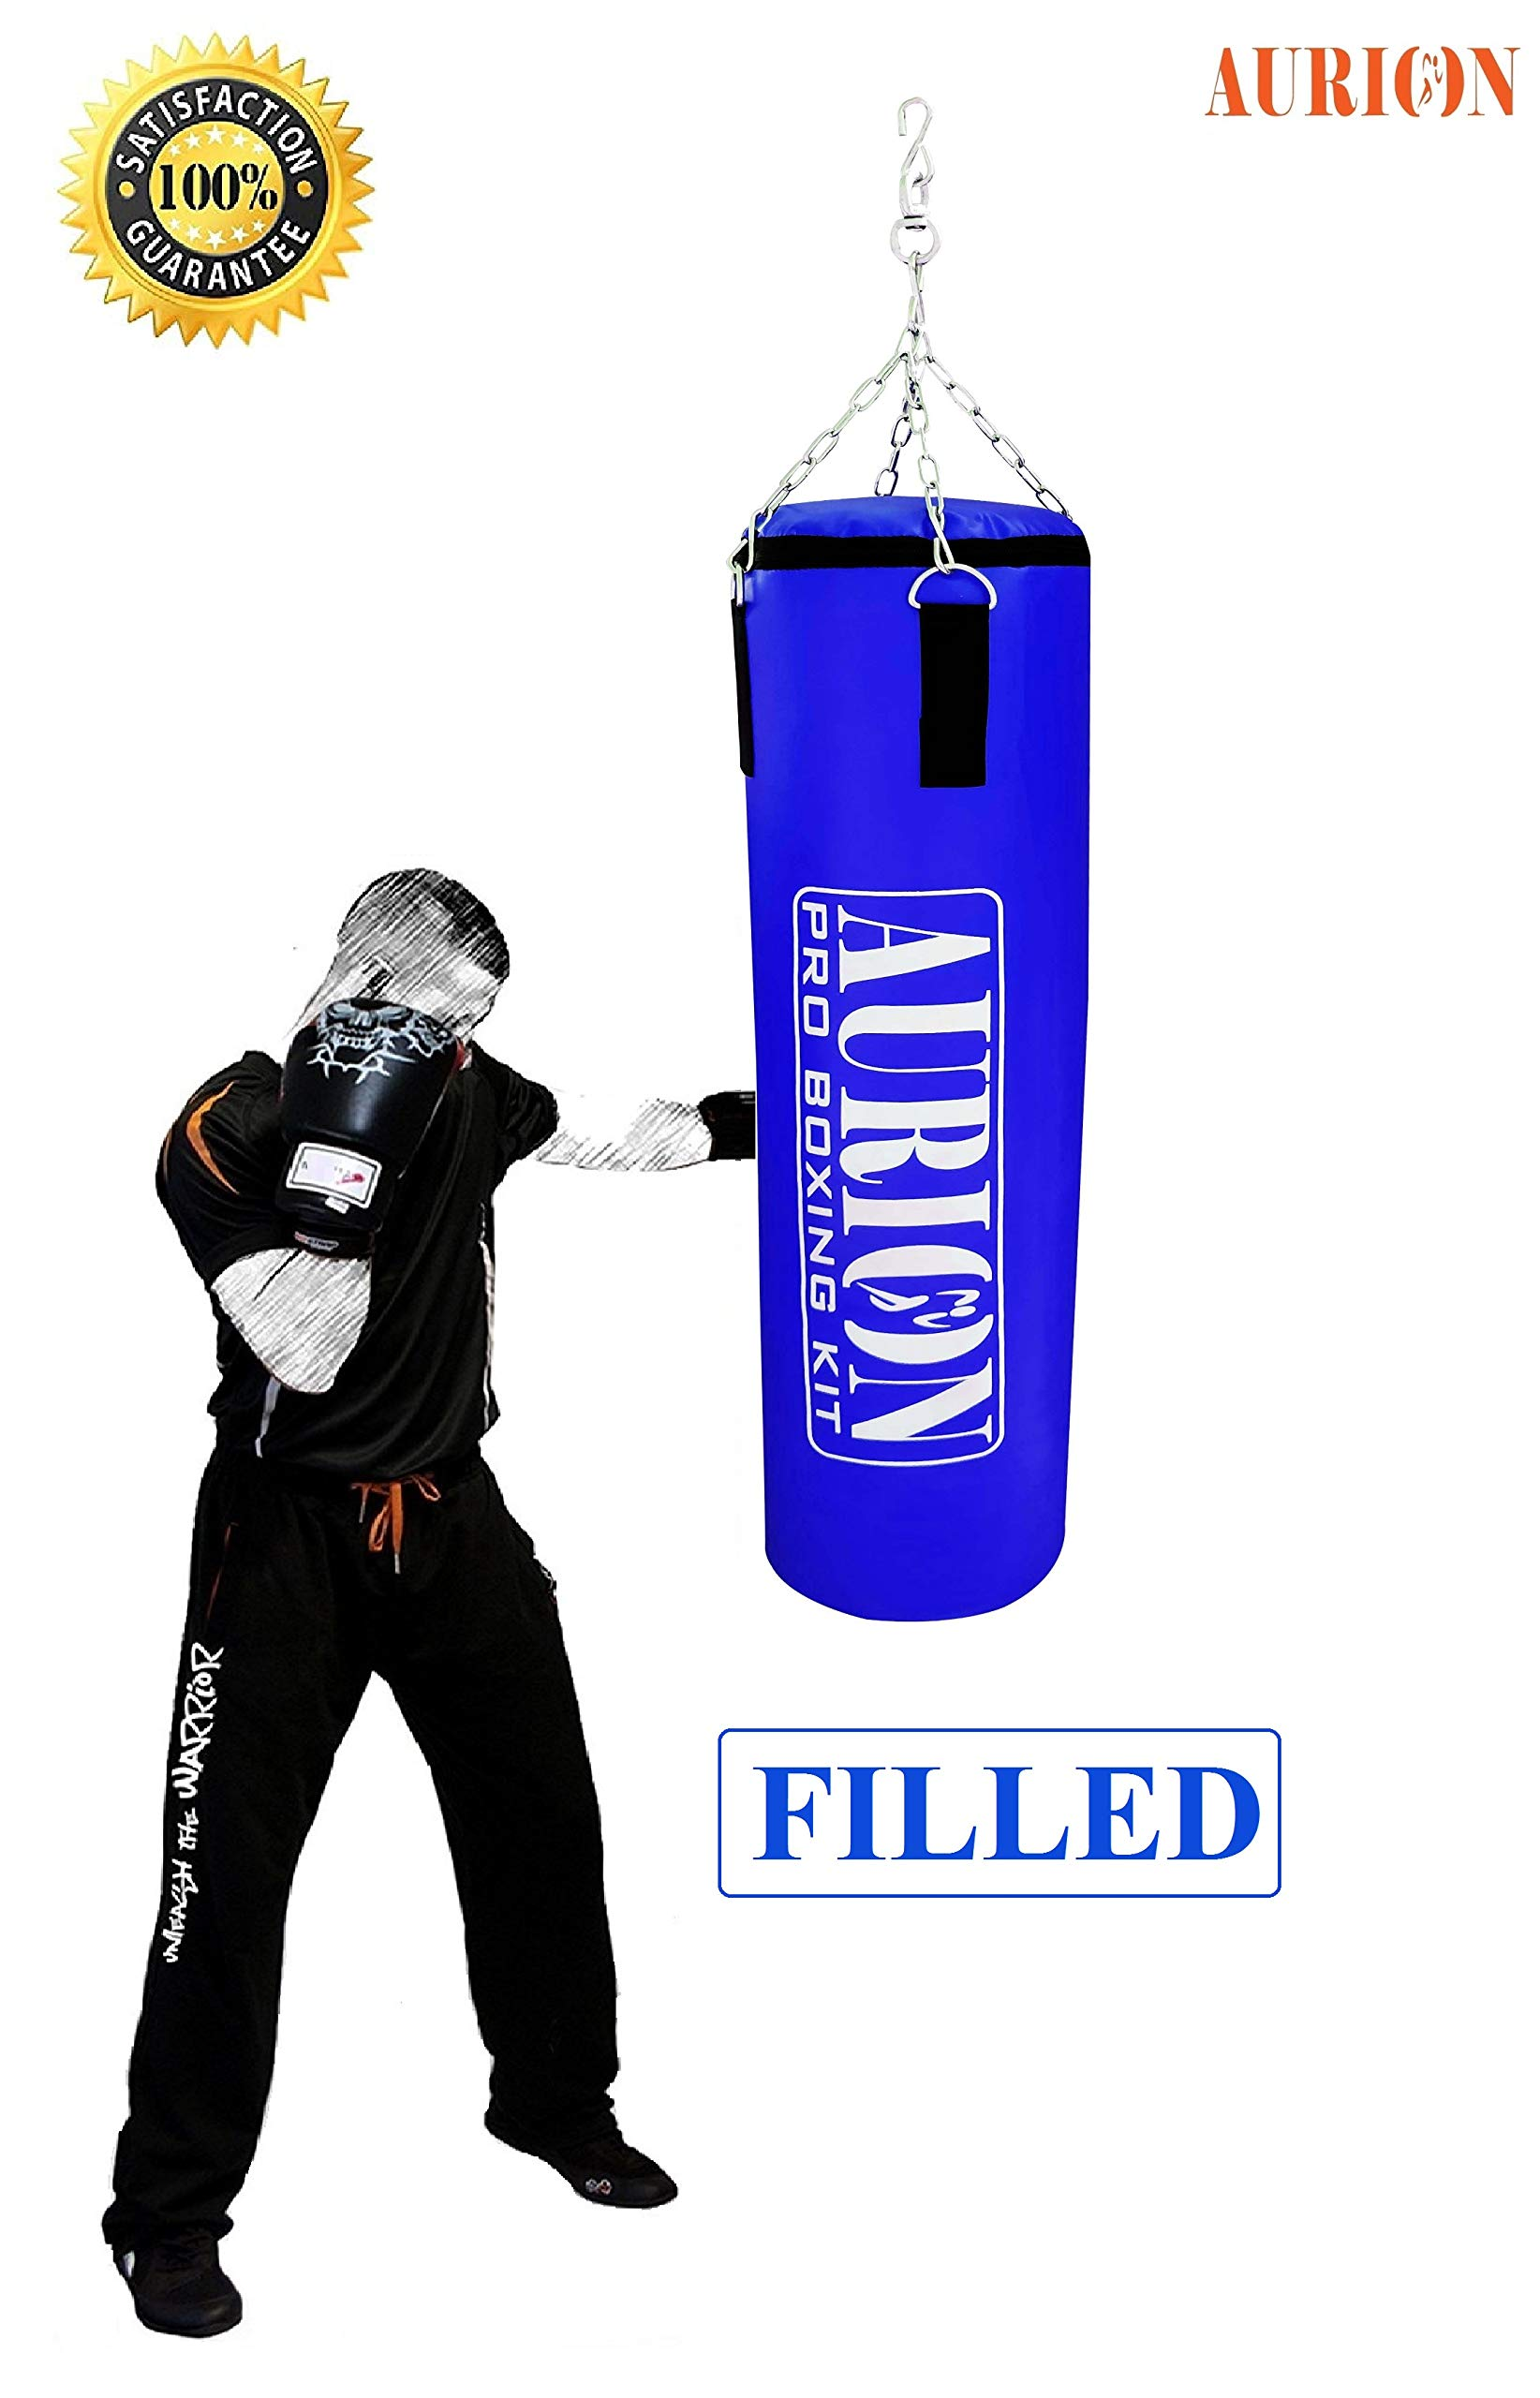 Aurion Synthetic Leather Punching Bag- Black - Filled 4 Feet with Free Chain Heavy Bag with Chain (B077YSVM31) Amazon Price History, Amazon Price Tracker